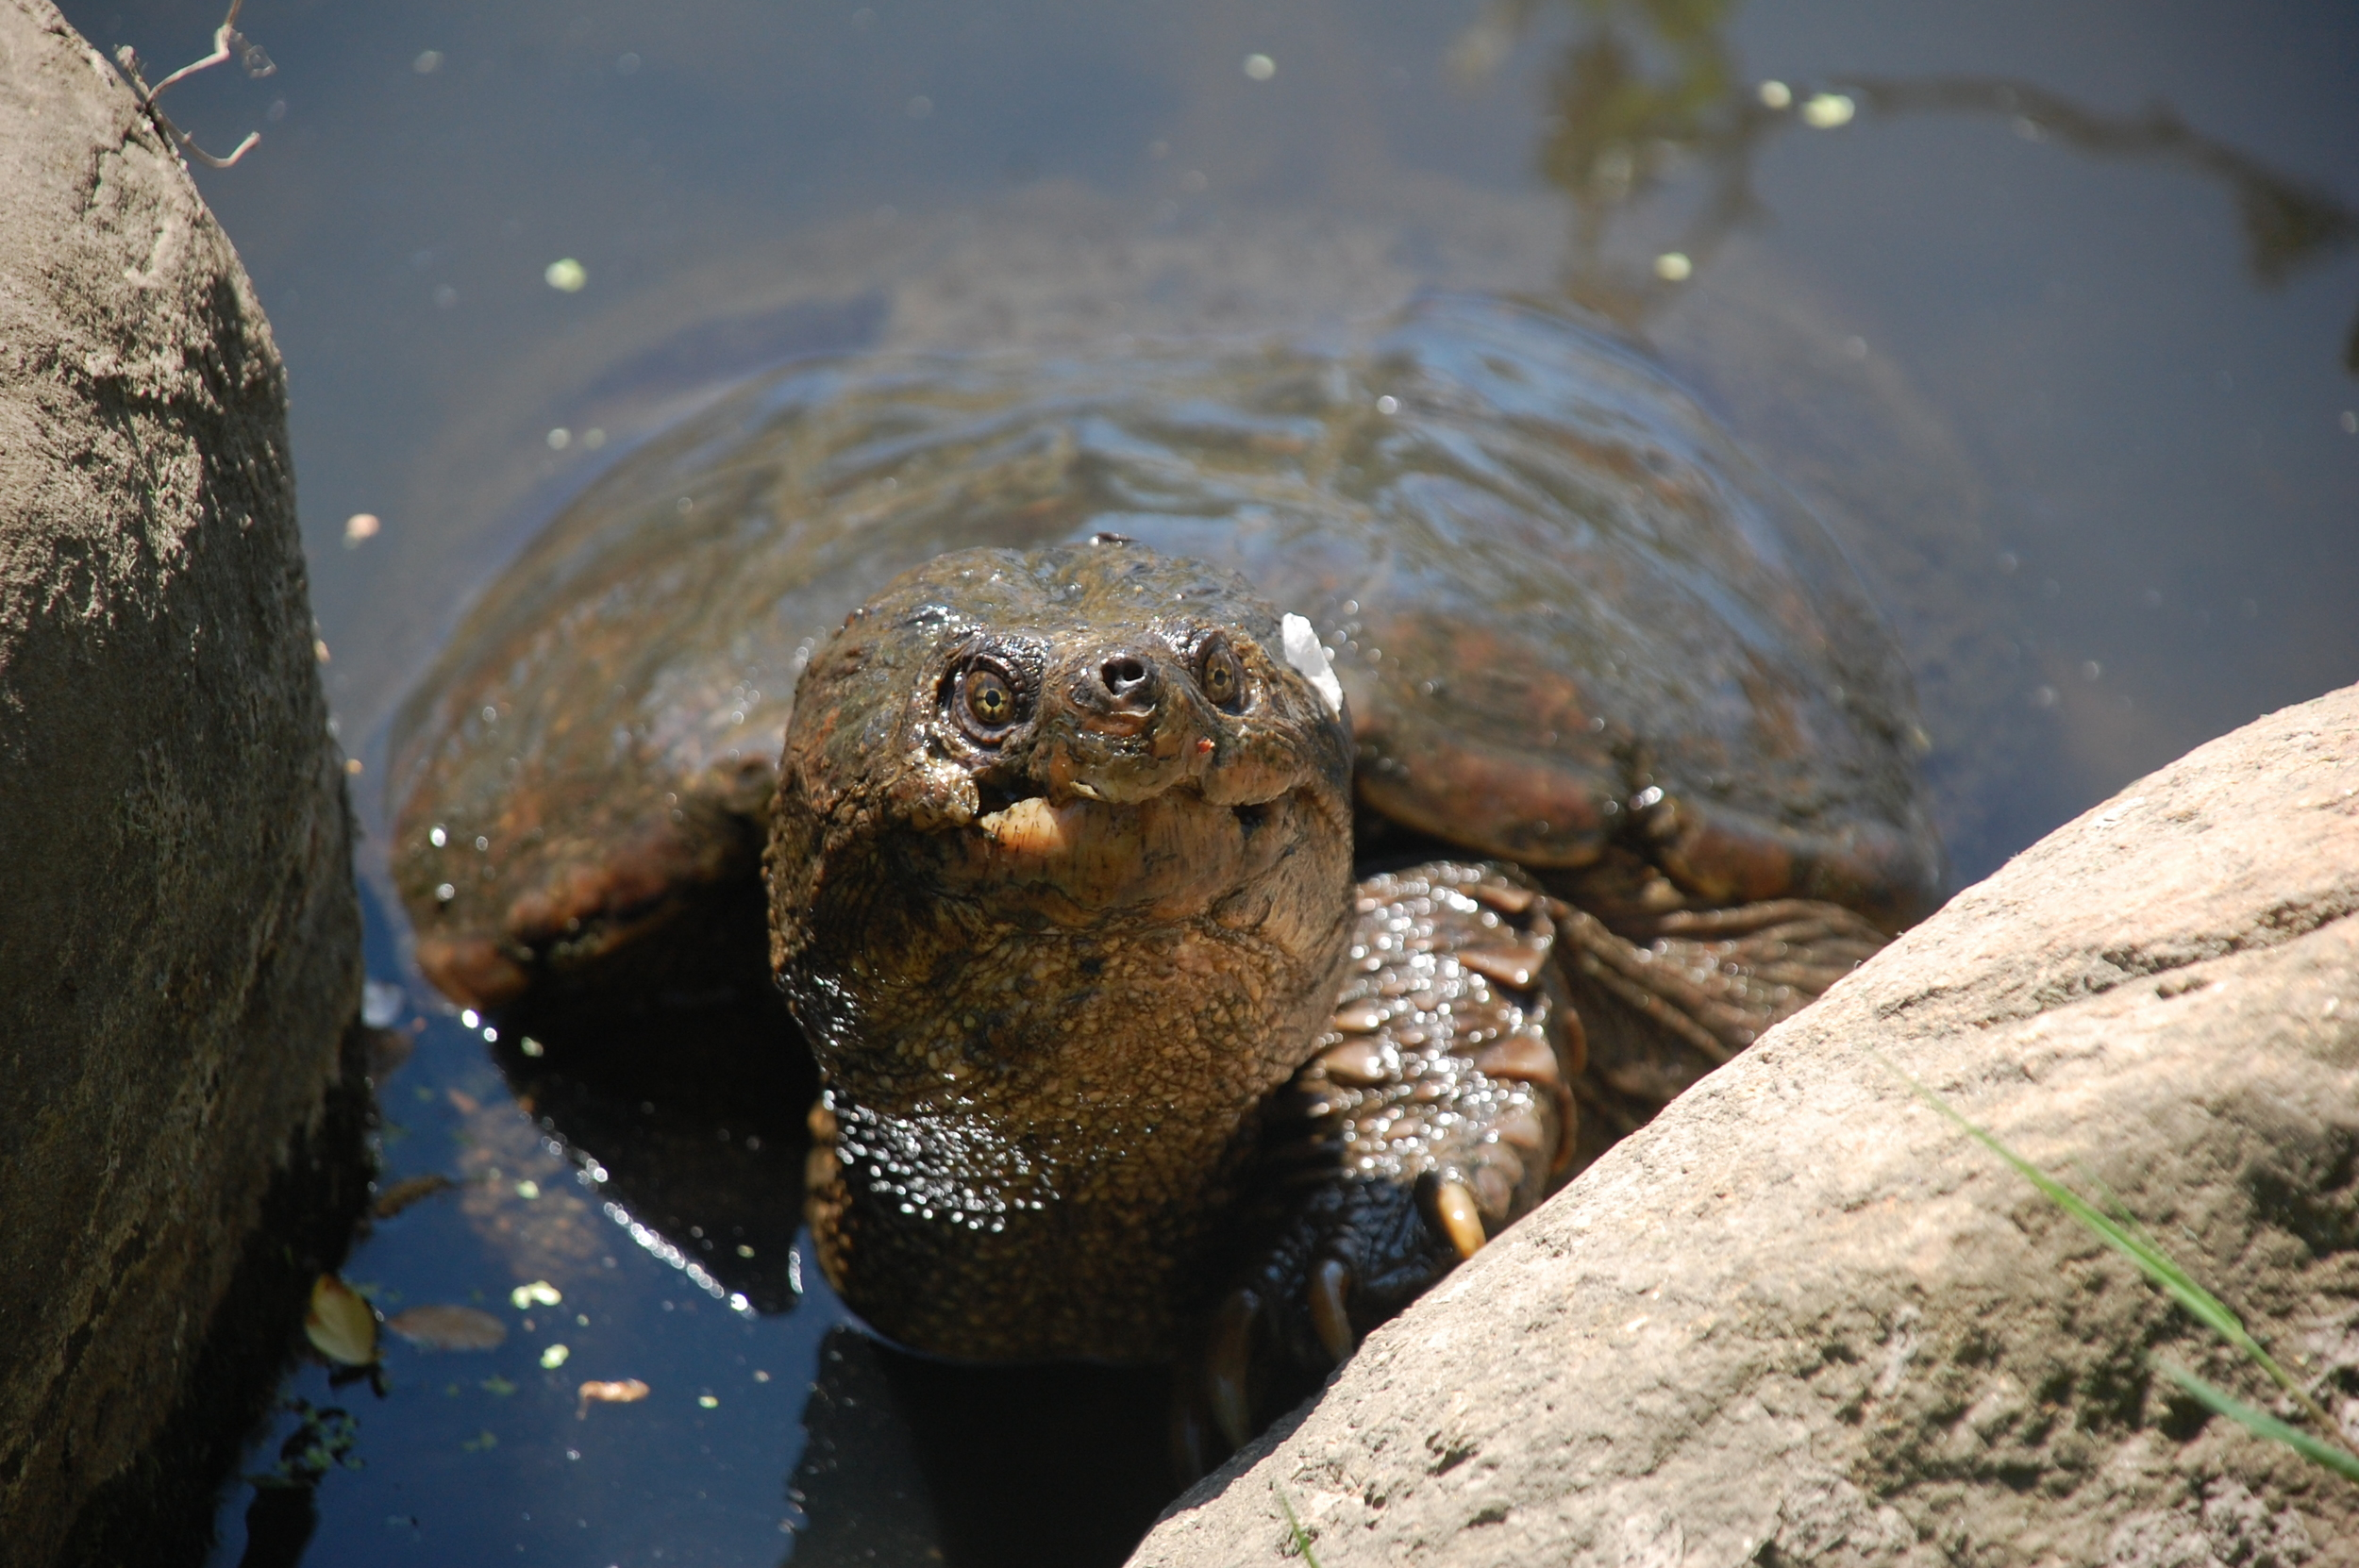 Inquisitive snapping turtle.  PHOTO BY CYNTHIA EHLINGER.